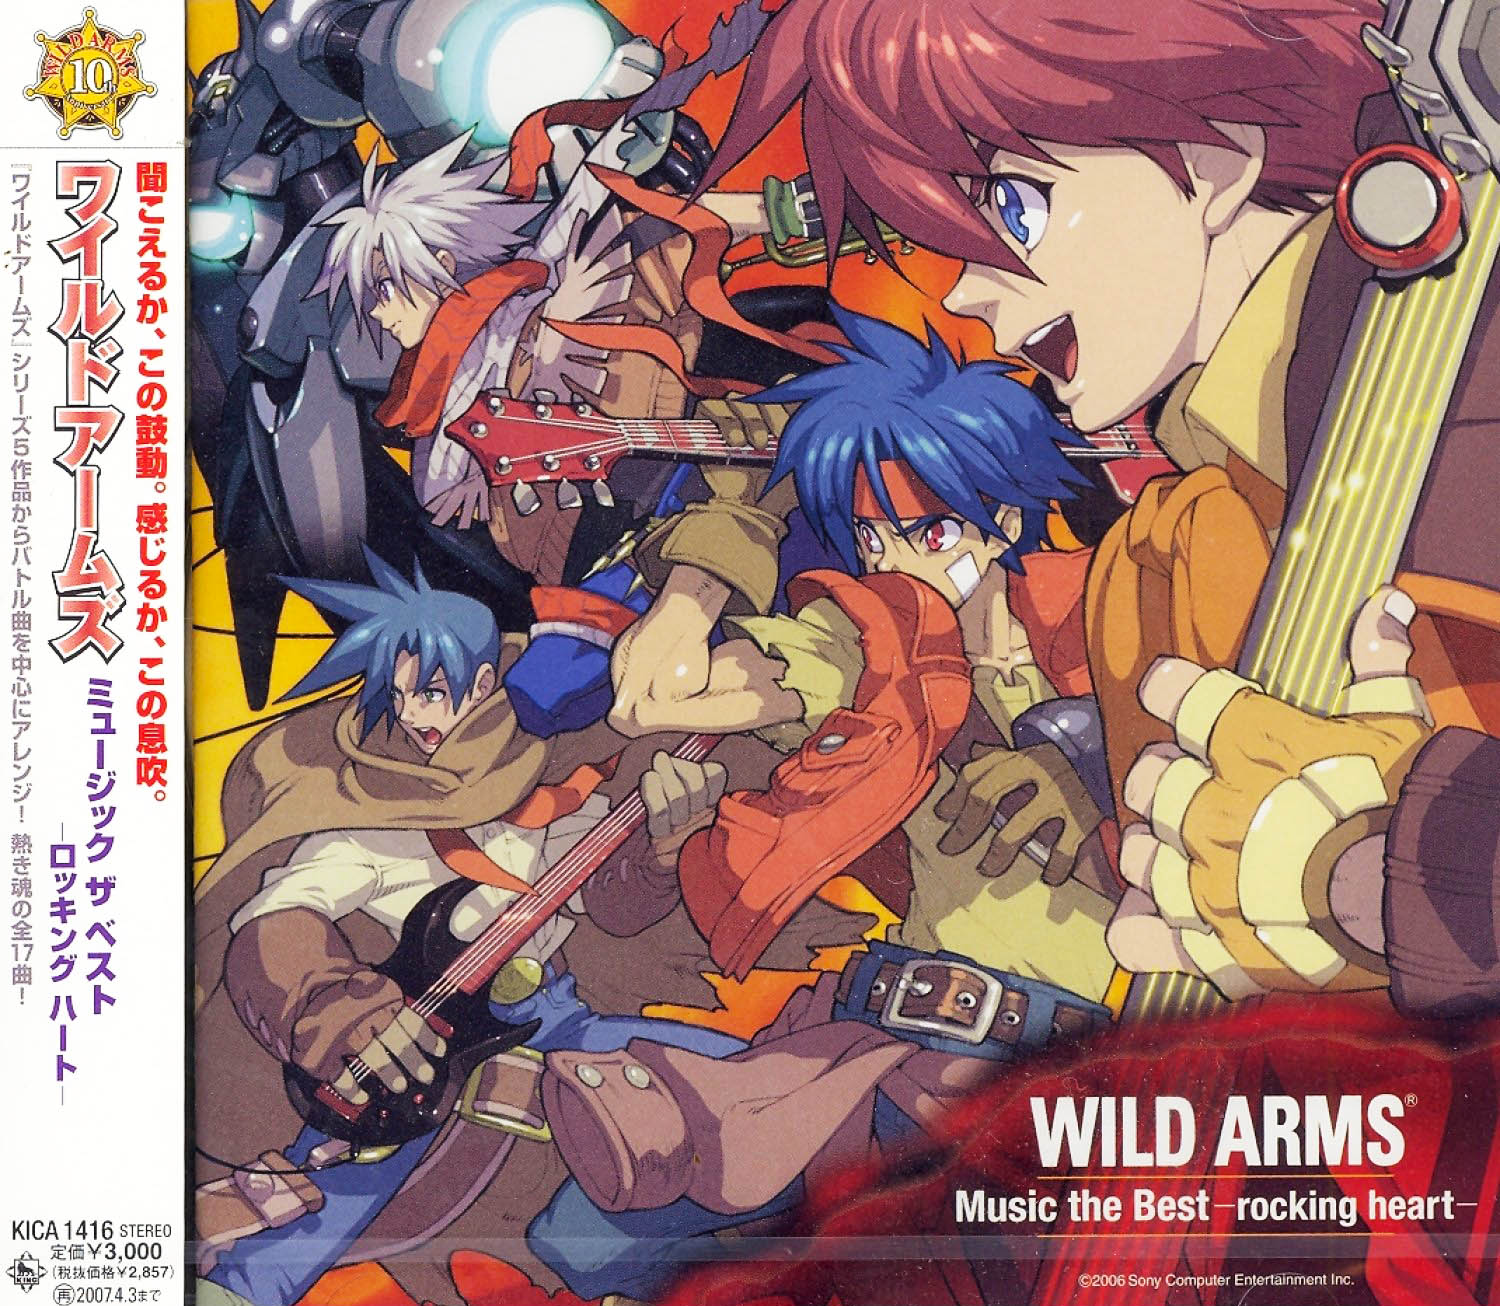 WILD ARMS Music the Best -rocking heart-